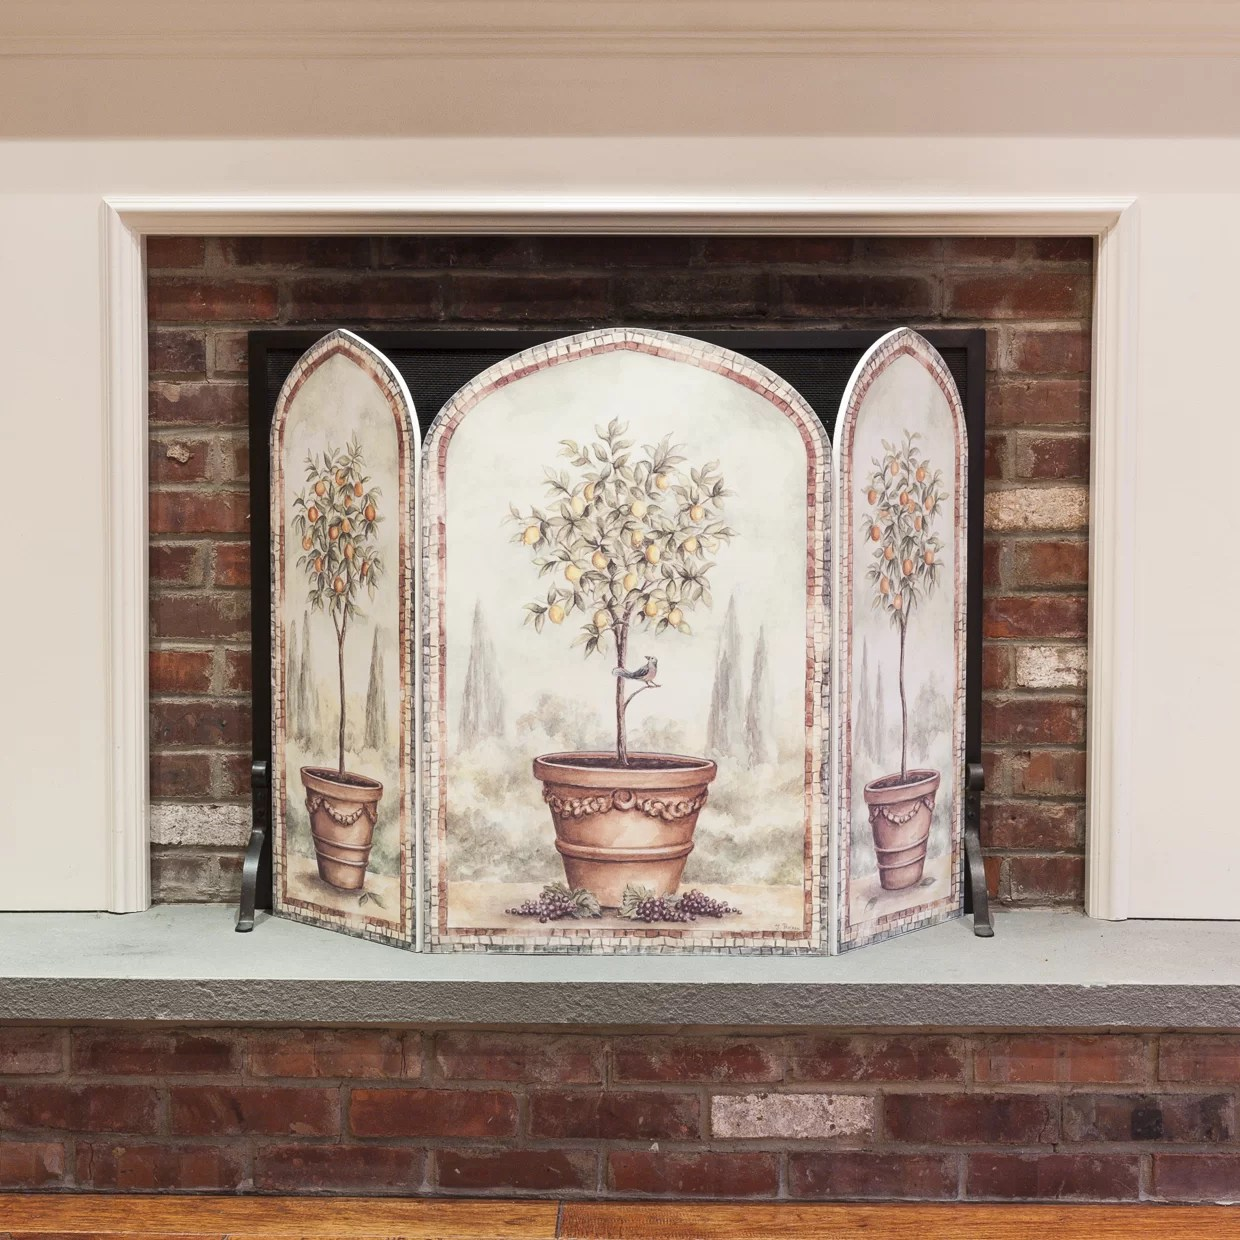 Fireplace Screens Tree Design Stupell Industries Orange And Lemon Trees 3 Panel